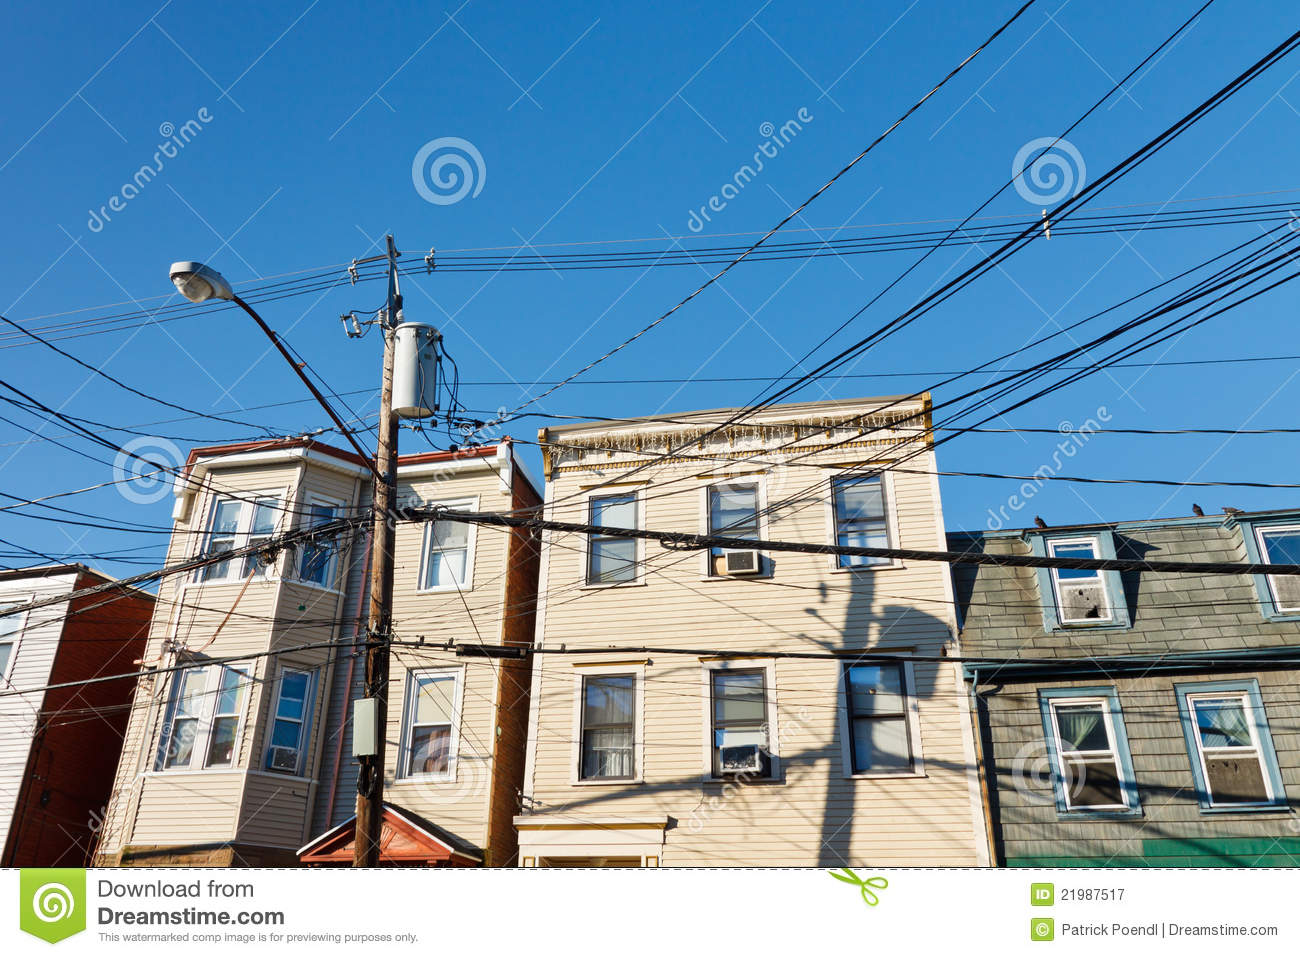 India Electrical Power Lines Not Lossing Wiring Diagram Residential Chaotic Electric Royalty Free Stock Photography Pole In